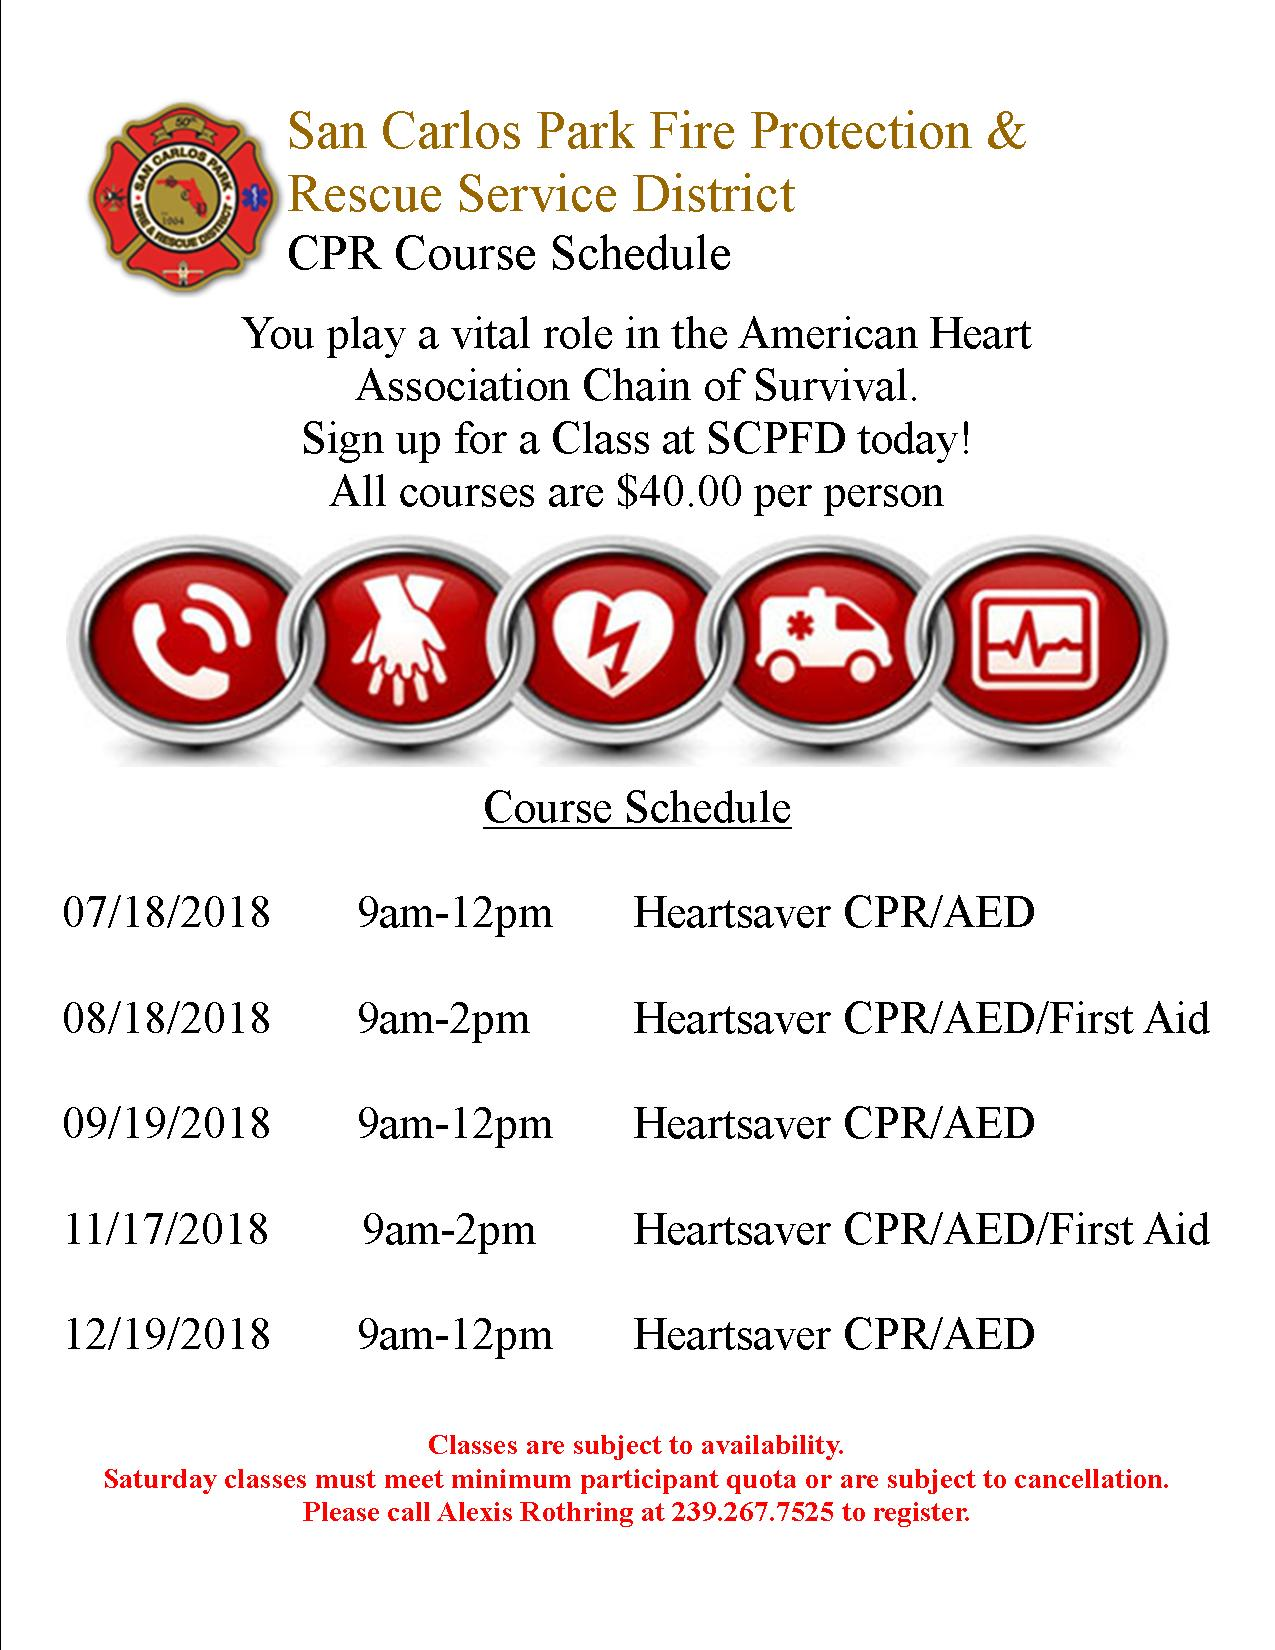 Heartsaver Cpr Classes San Carlos Park Fire Protection And Rescue